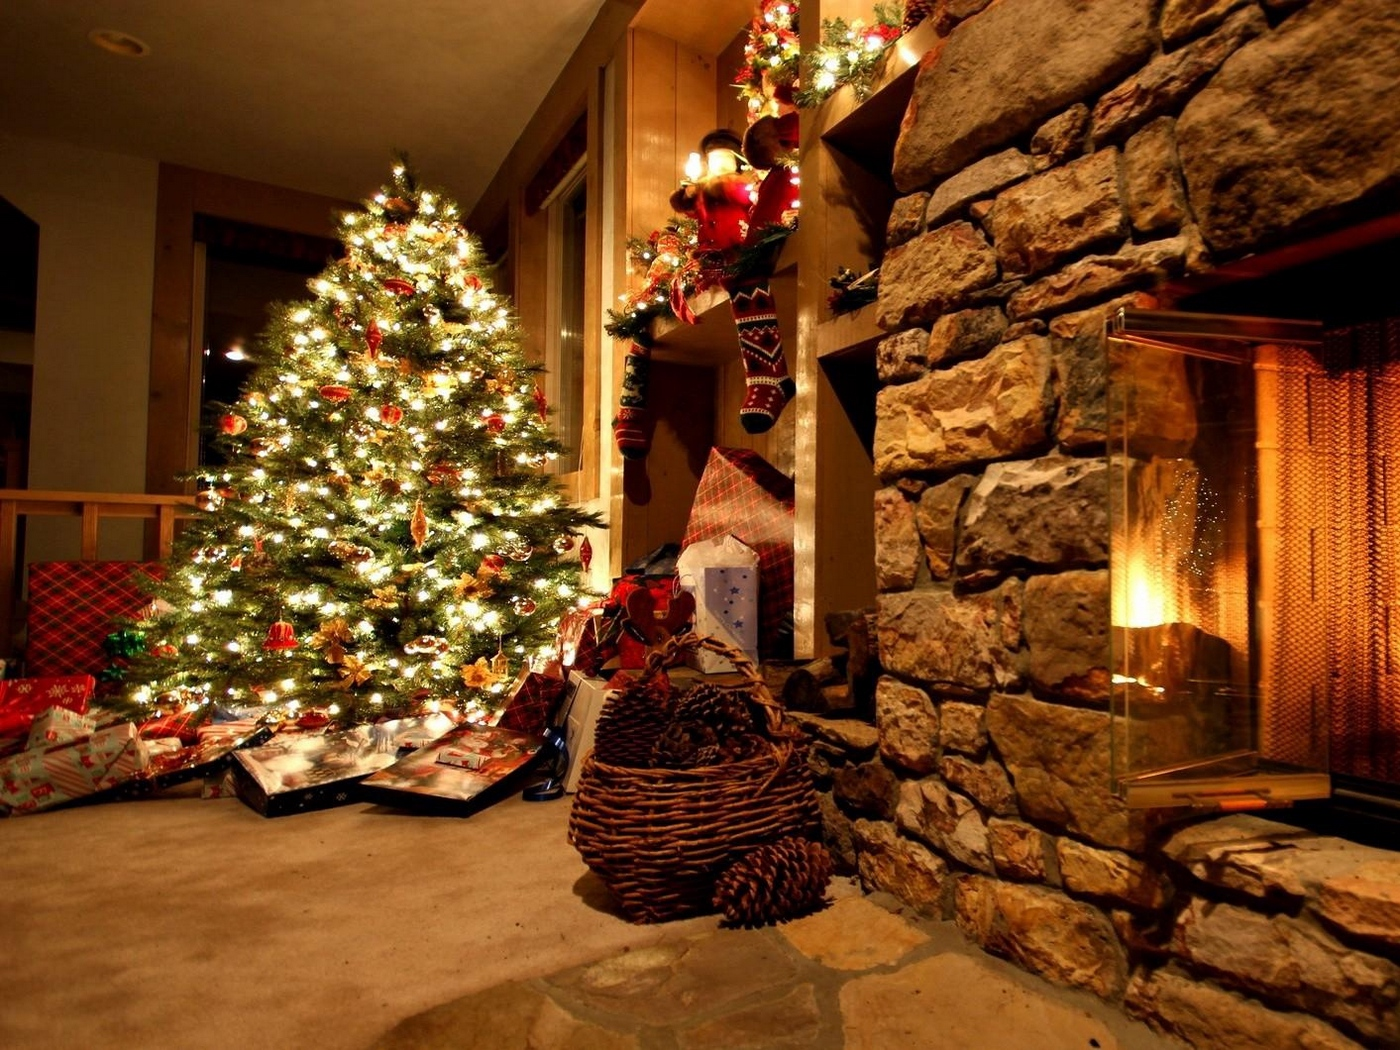 Download wallpaper 1400x1050 christmas tree ornaments fireplace 1400x1050